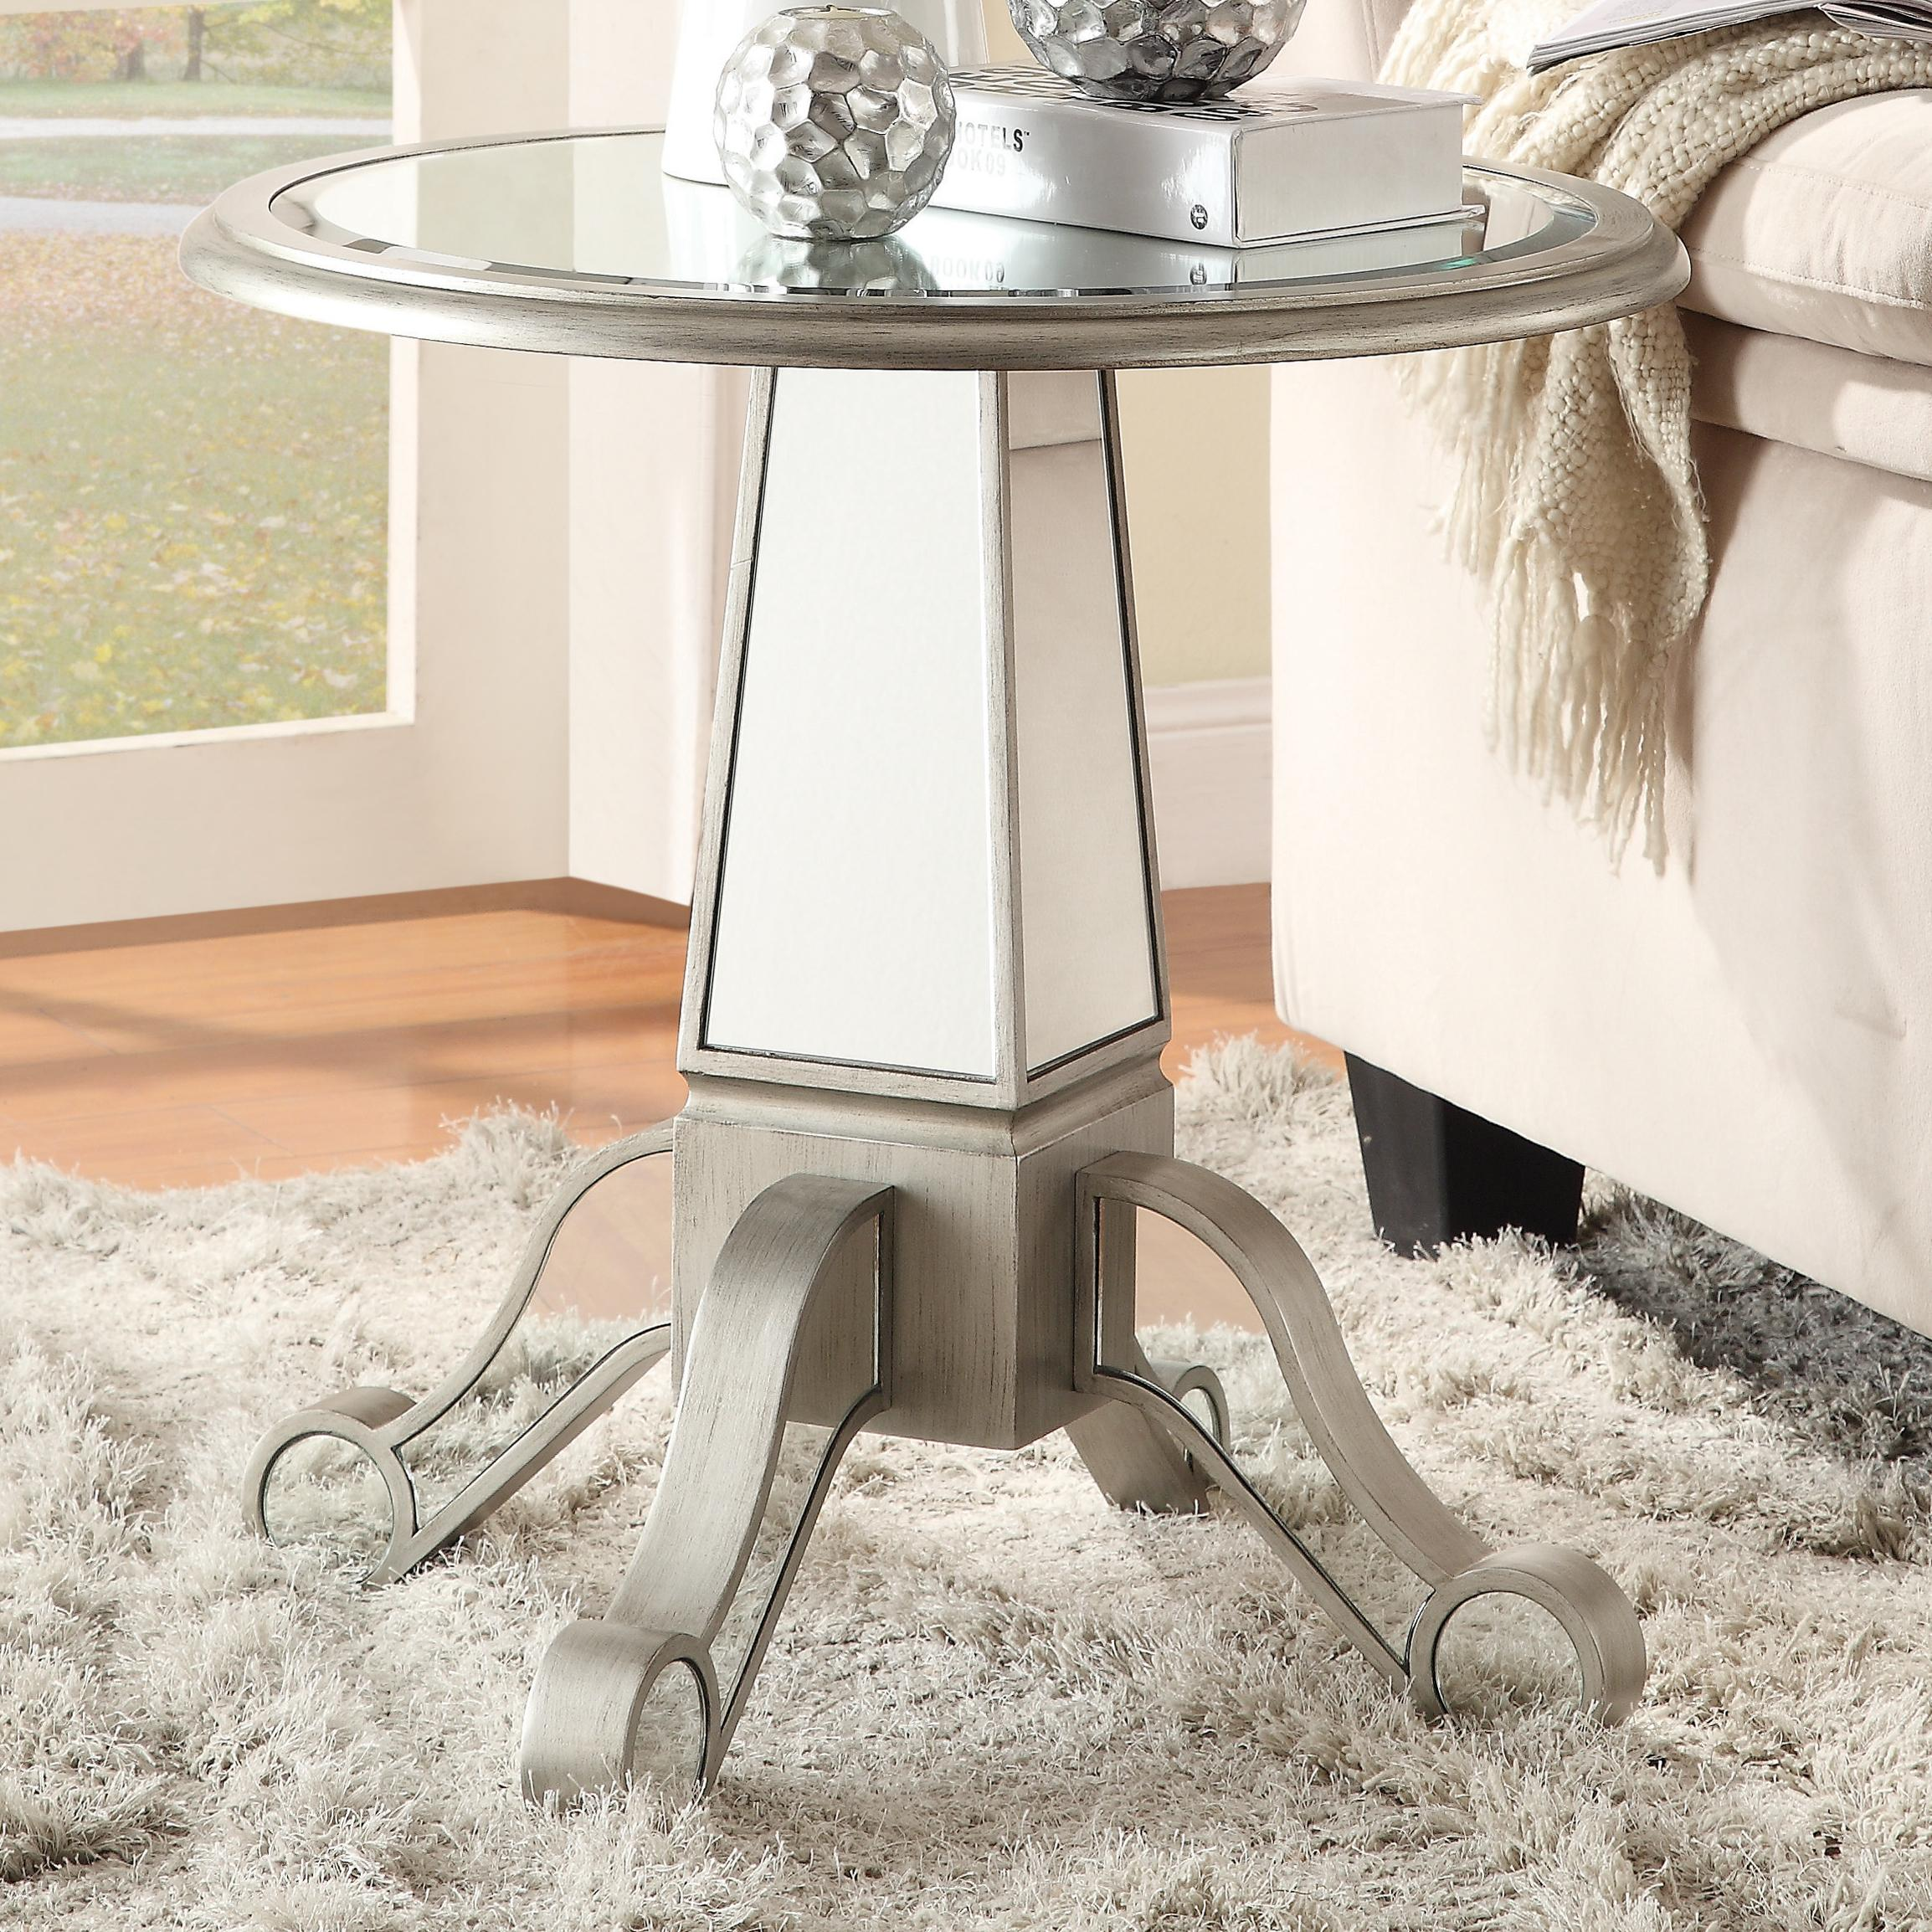 mirrored round accent table alexander kat furniture hardwood light blue coffee small side with drawers white corner counter height unfinished console drawer tables black telephone